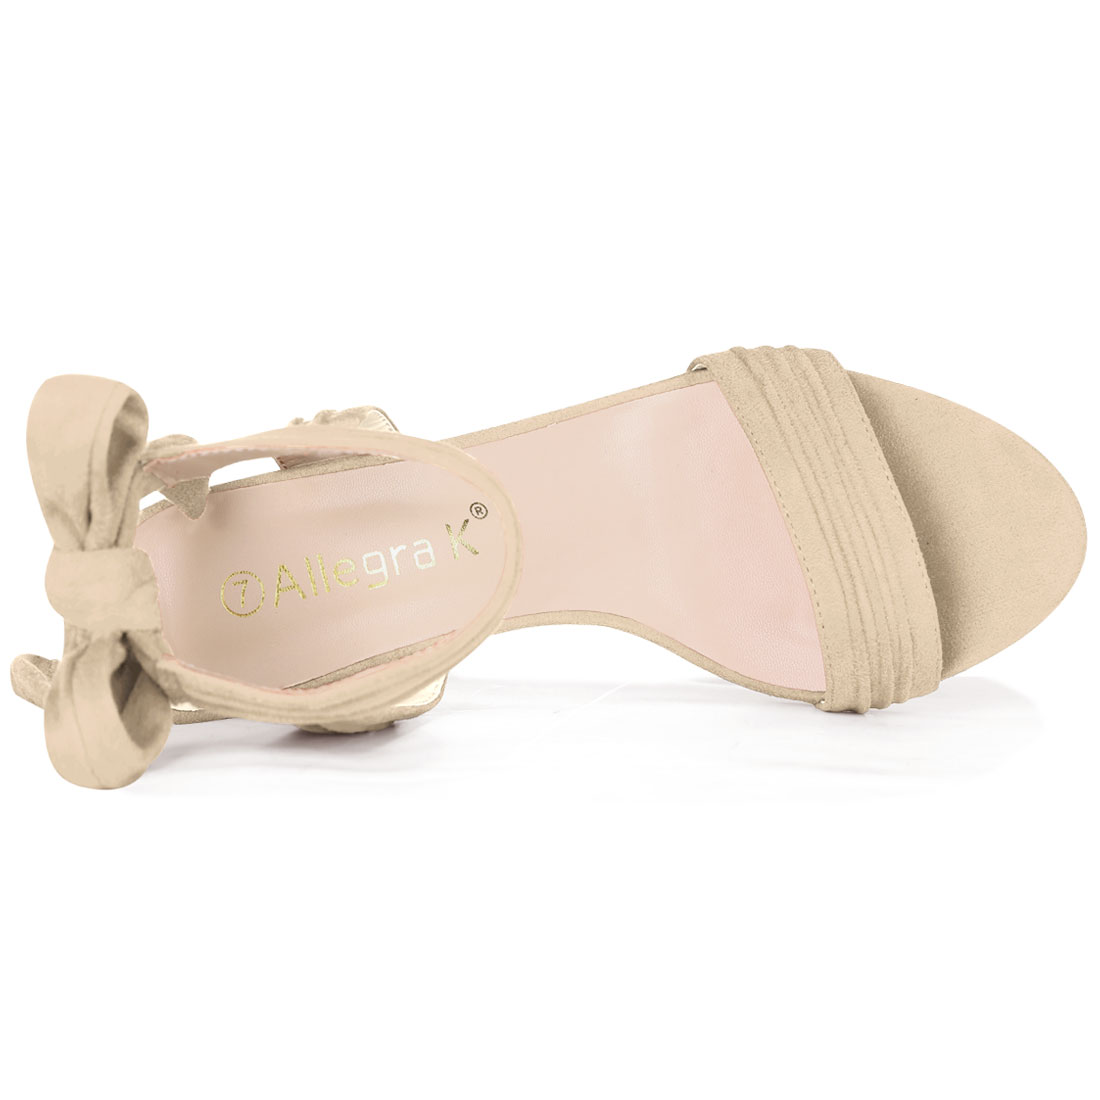 Unique Bargains Women's Ankle Tie Open Toe Block Heel Sandals Beige (Size 9.5) - image 6 of 7